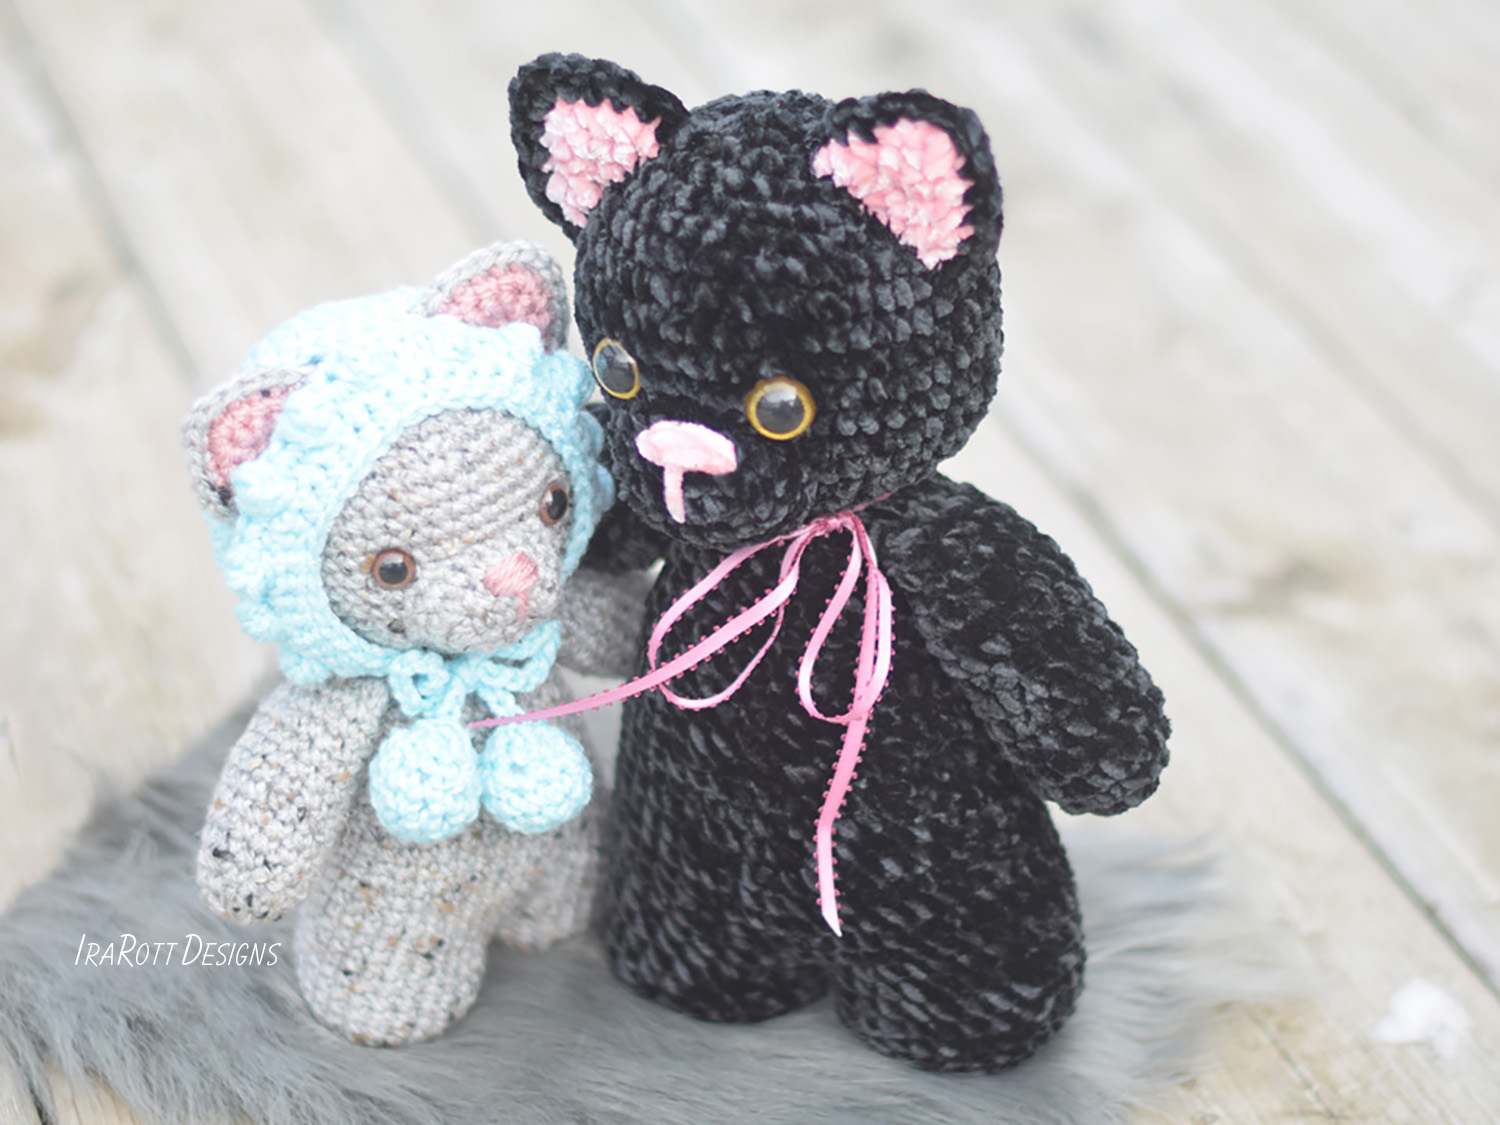 Sassy The Chubby Little Kitty Amigurumi PDF Crochet Pattern With Instant Download by IraRott